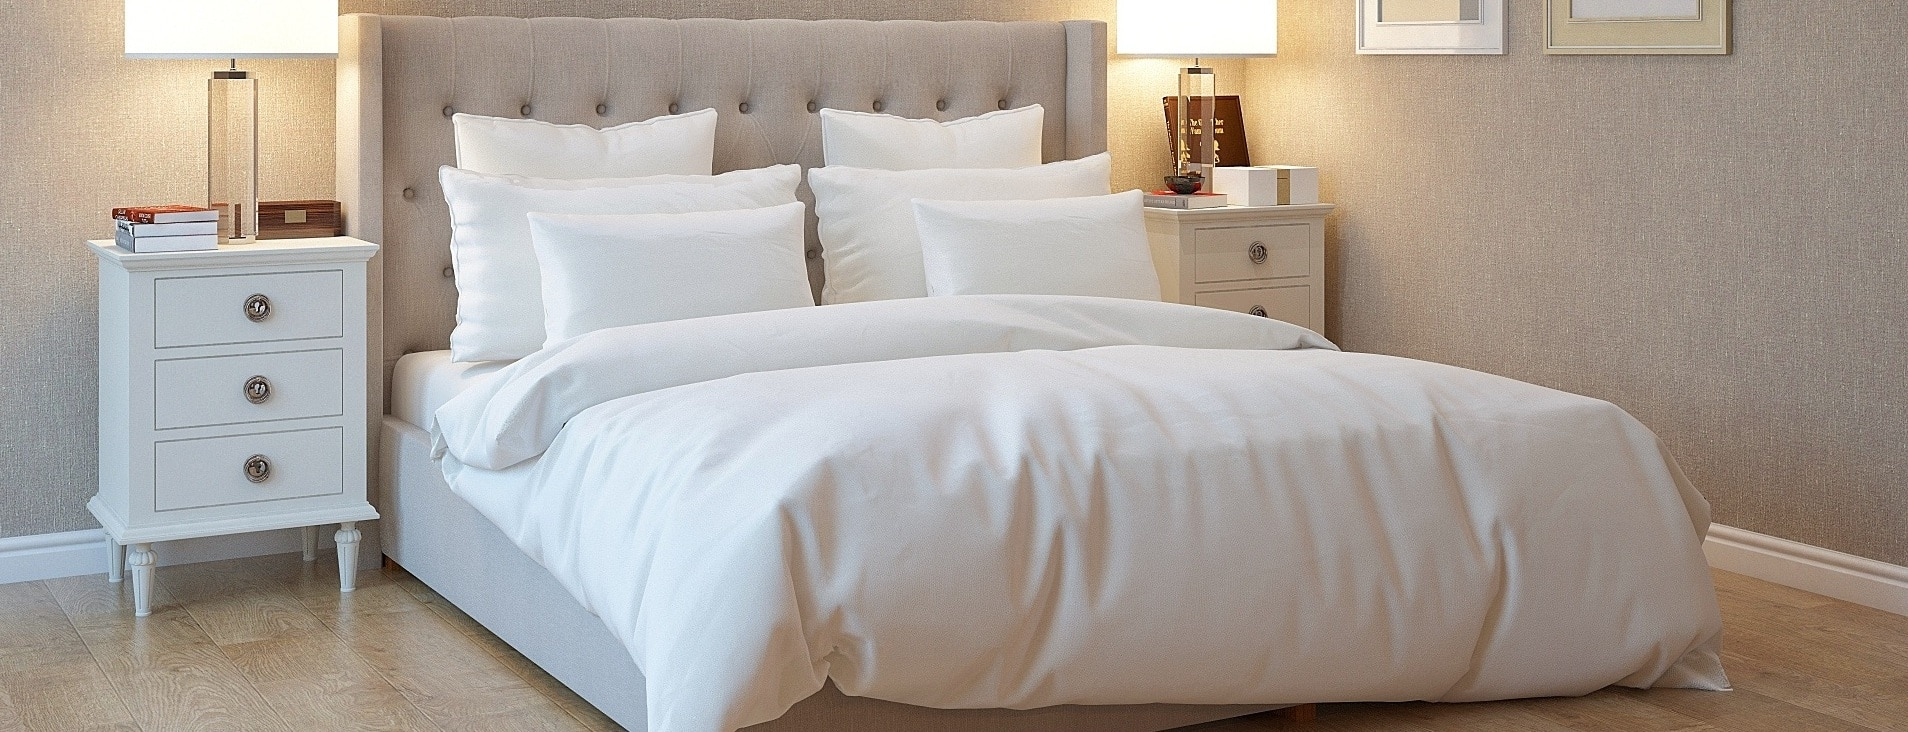 Best Percale Sheets